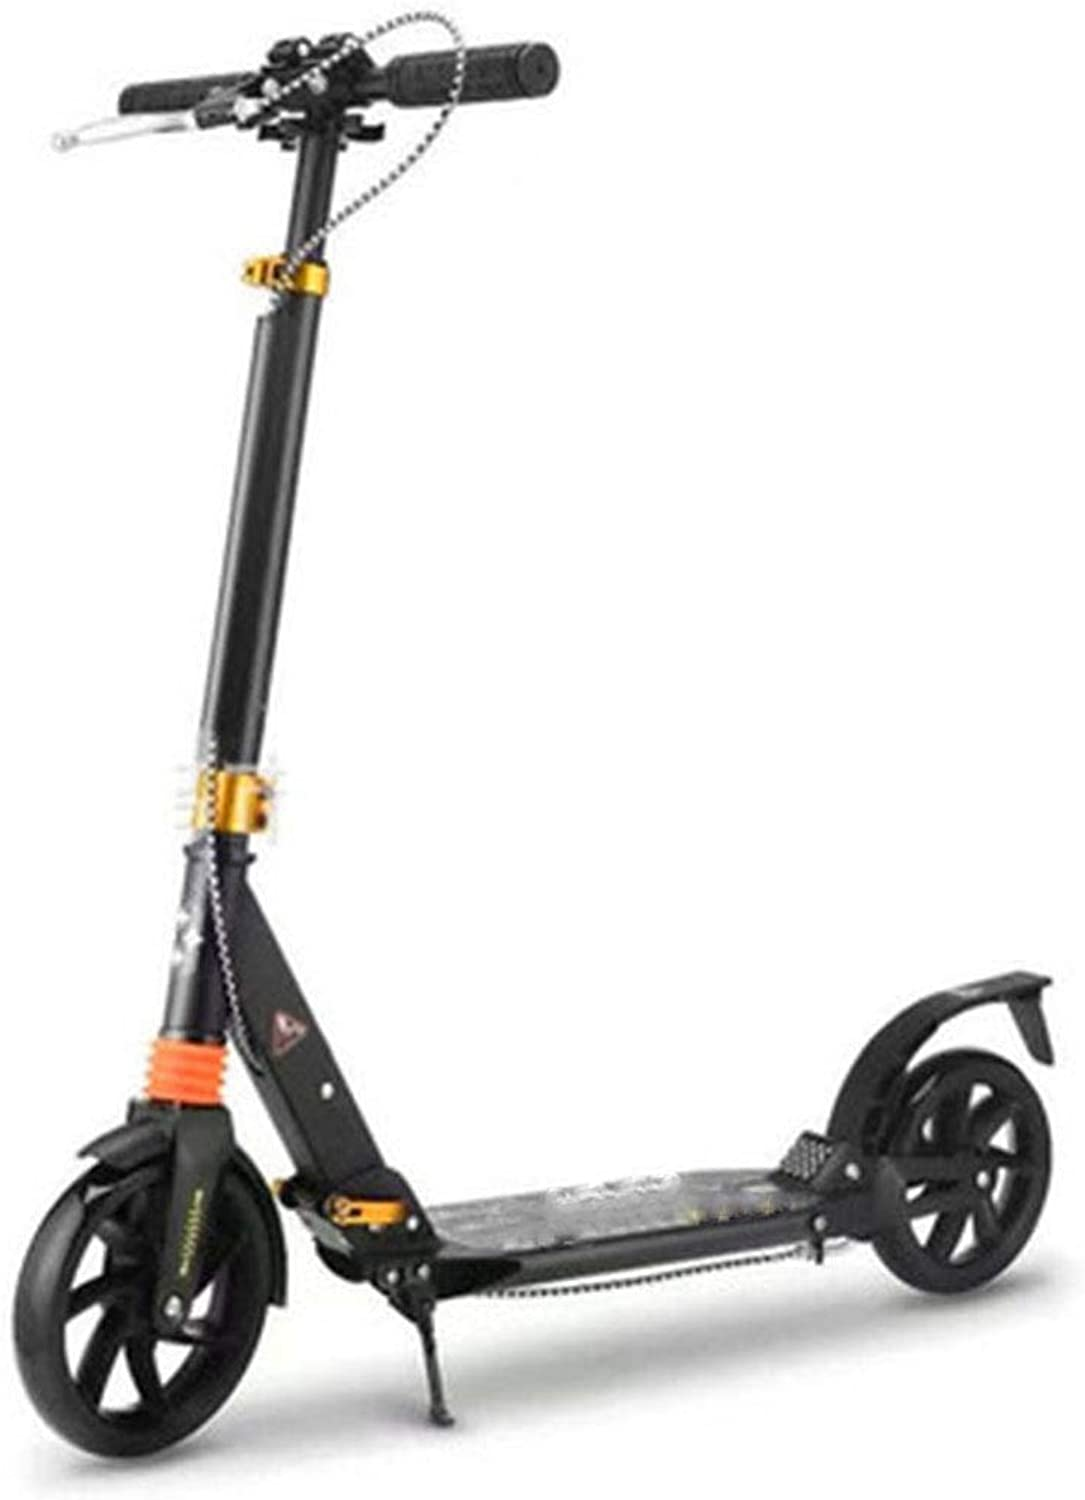 FDSjd Adult Scooter Hand Brake Double Shock Absorption Two-wheel Folding Aluminum Alloy Two-wheeled Scooter ( color   Black )